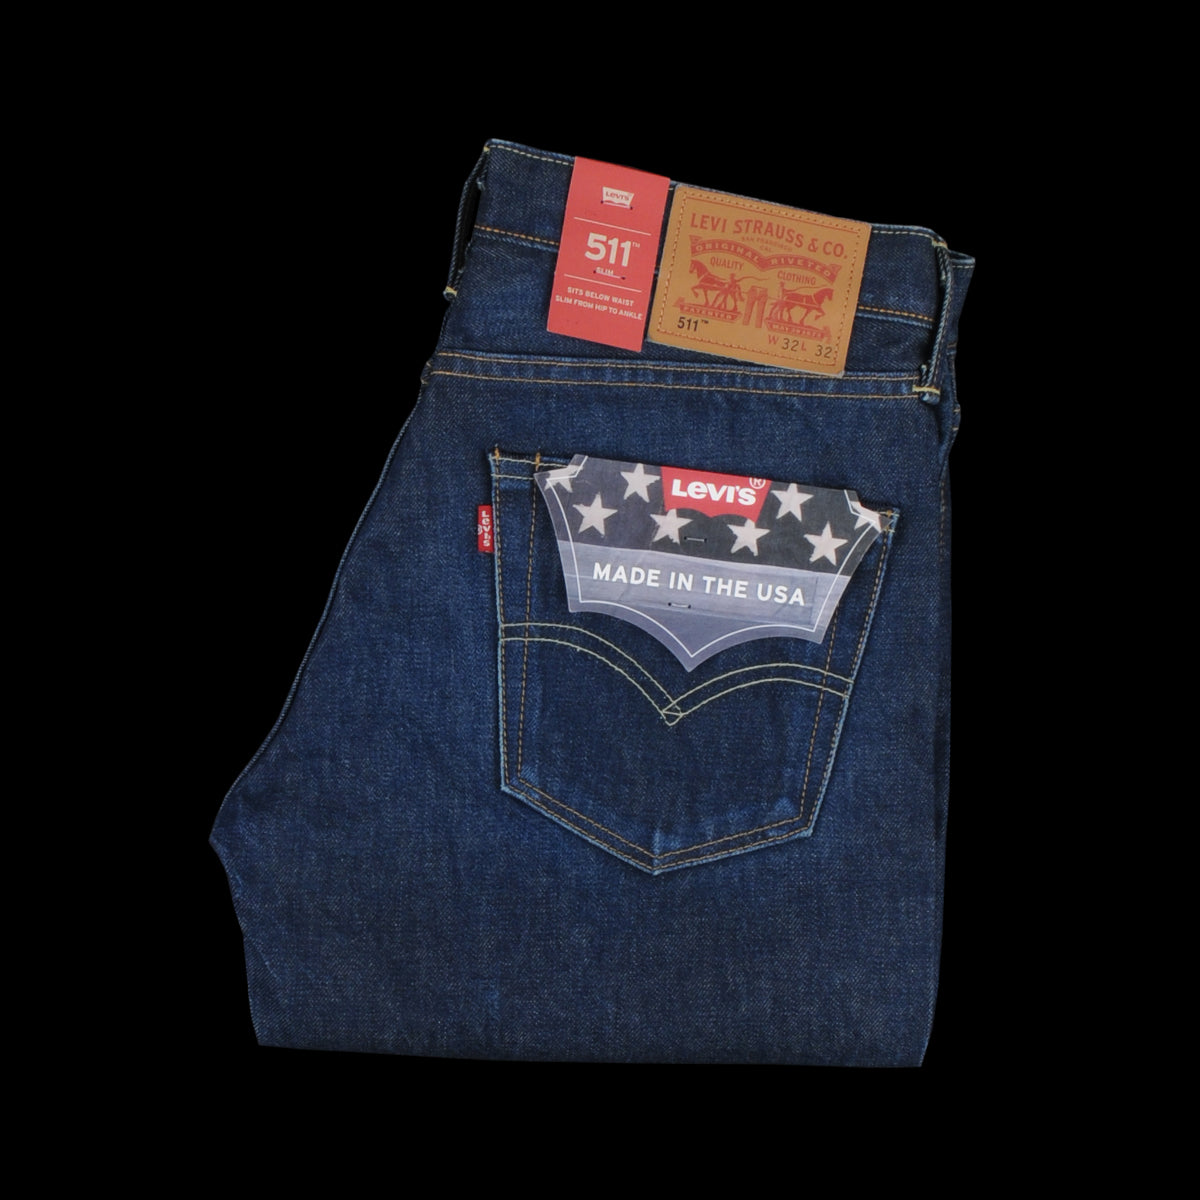 d1eb3c3de02 Levi's Made In The Usa - Selvedge 511 Slim Fit Jean in Rinse - UNIONMADE